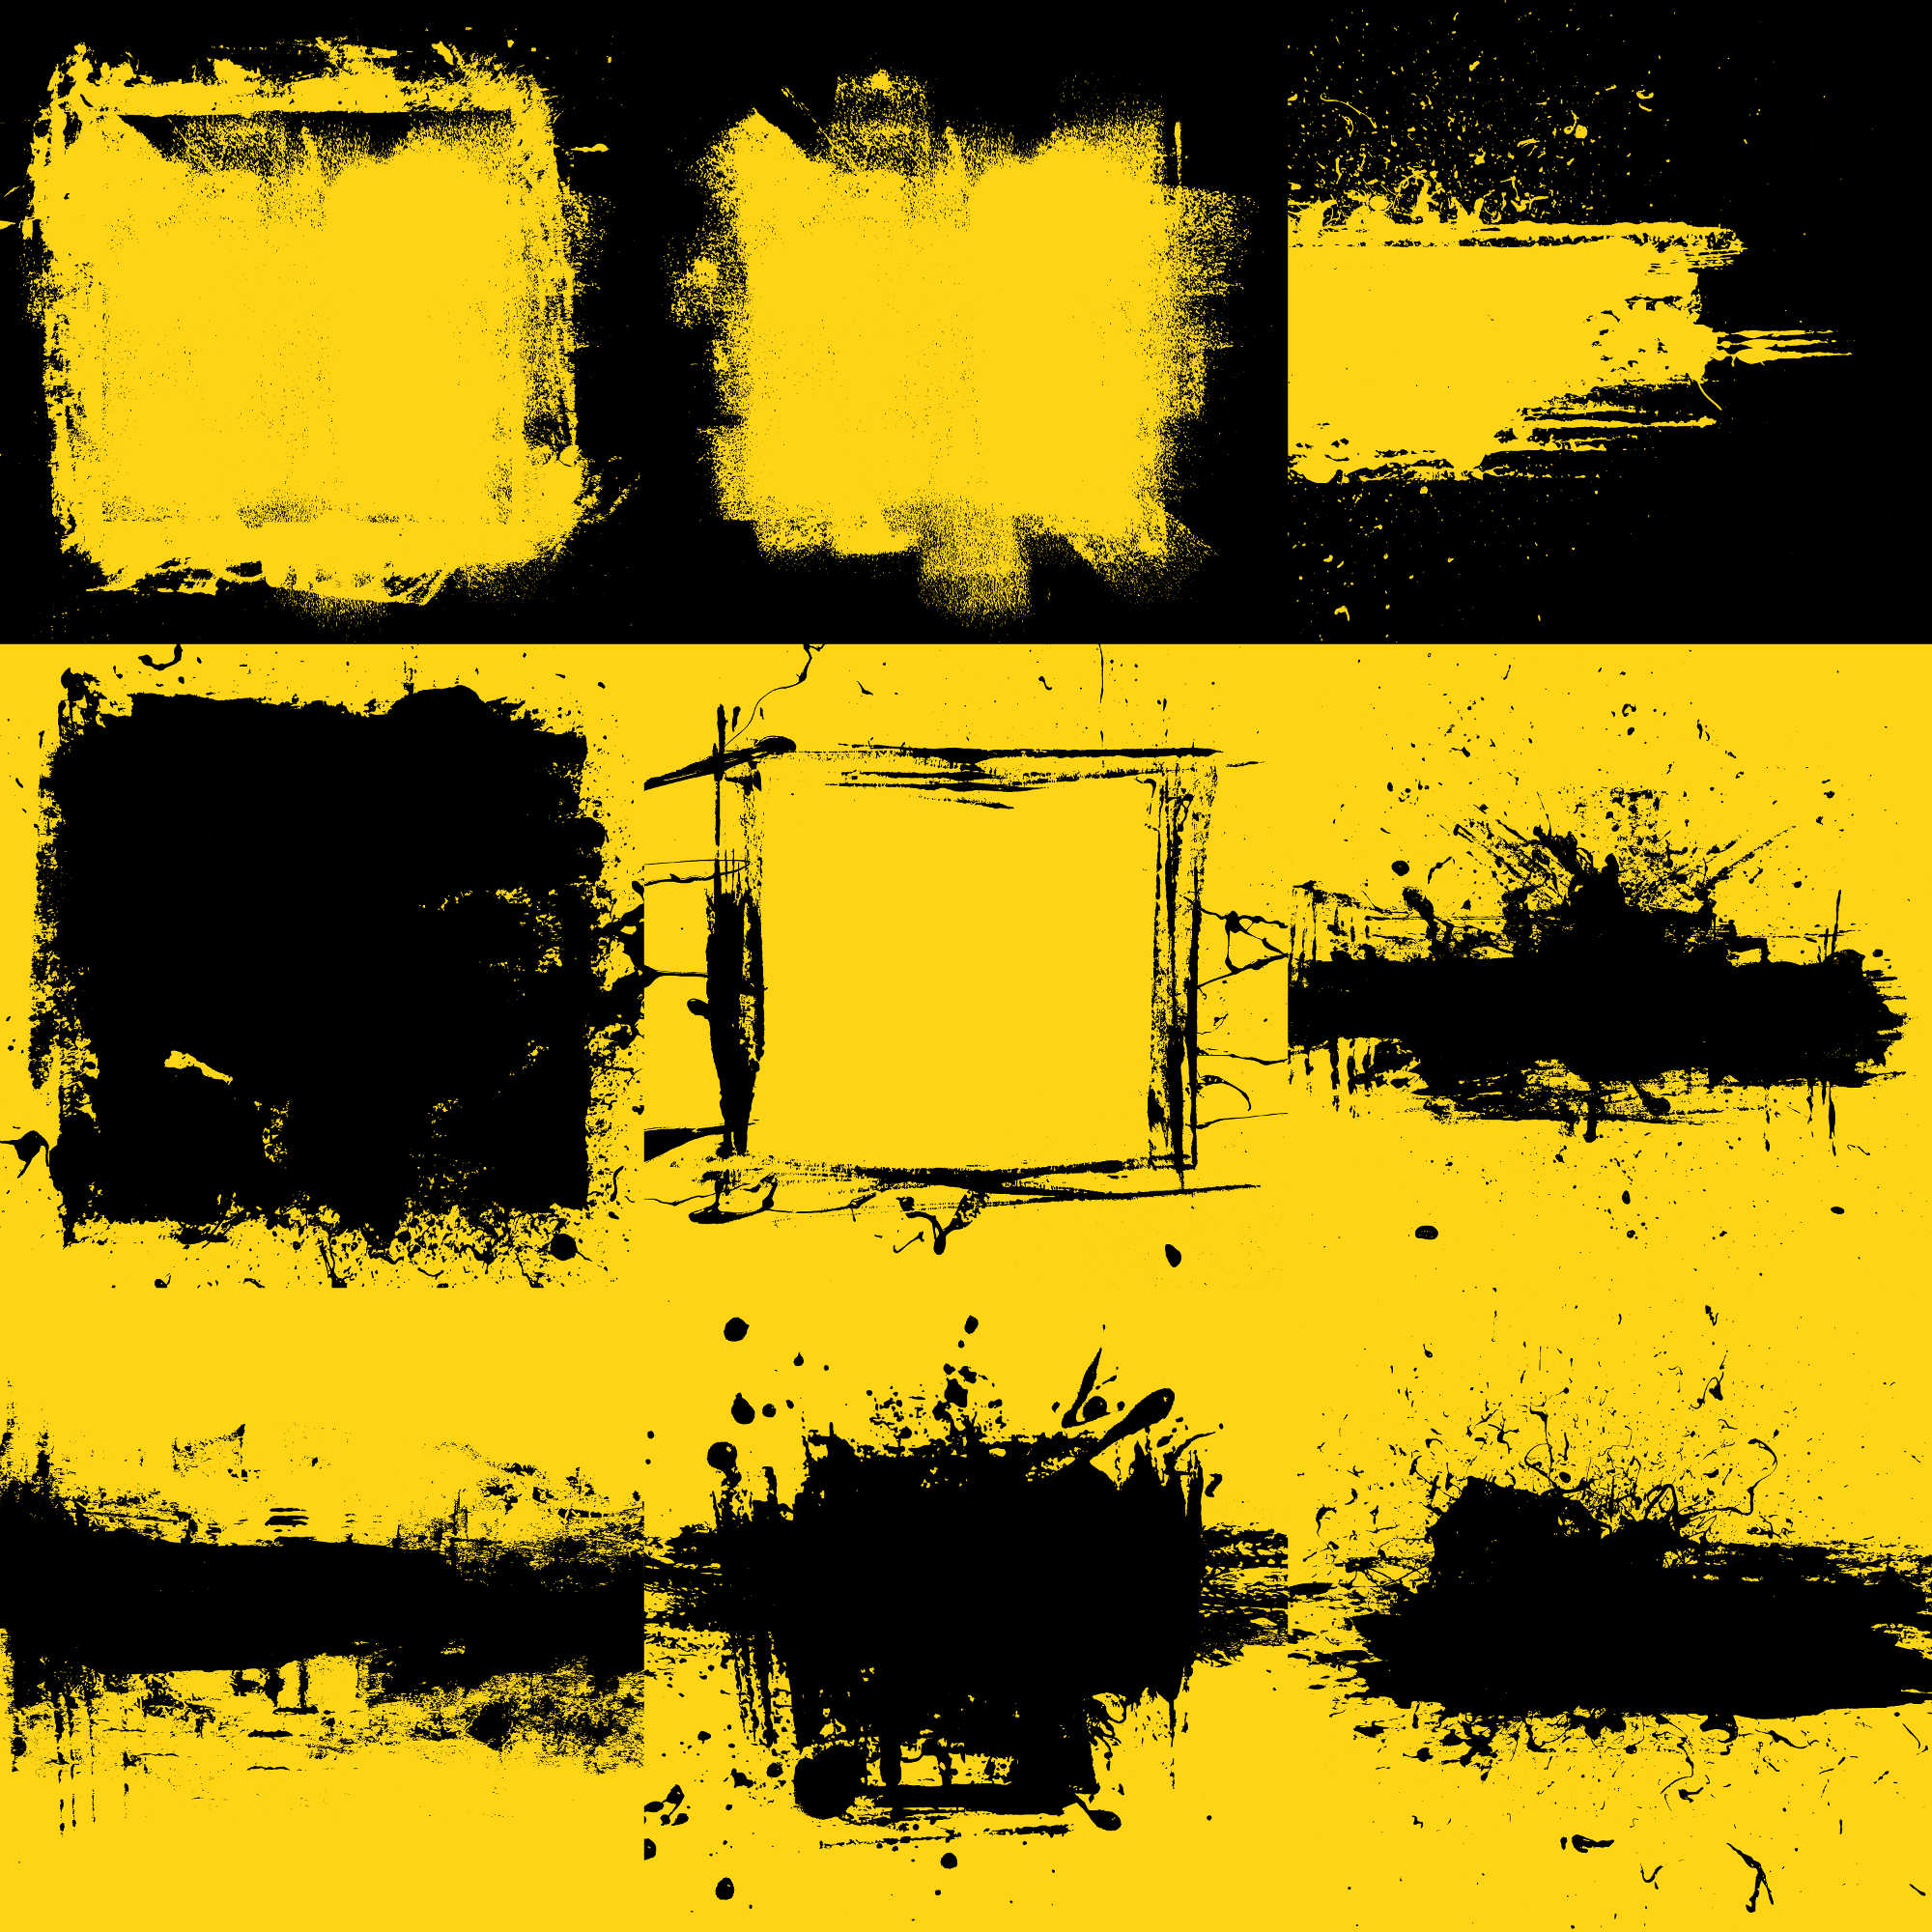 yellow-black-grunge-background-cover.jpg